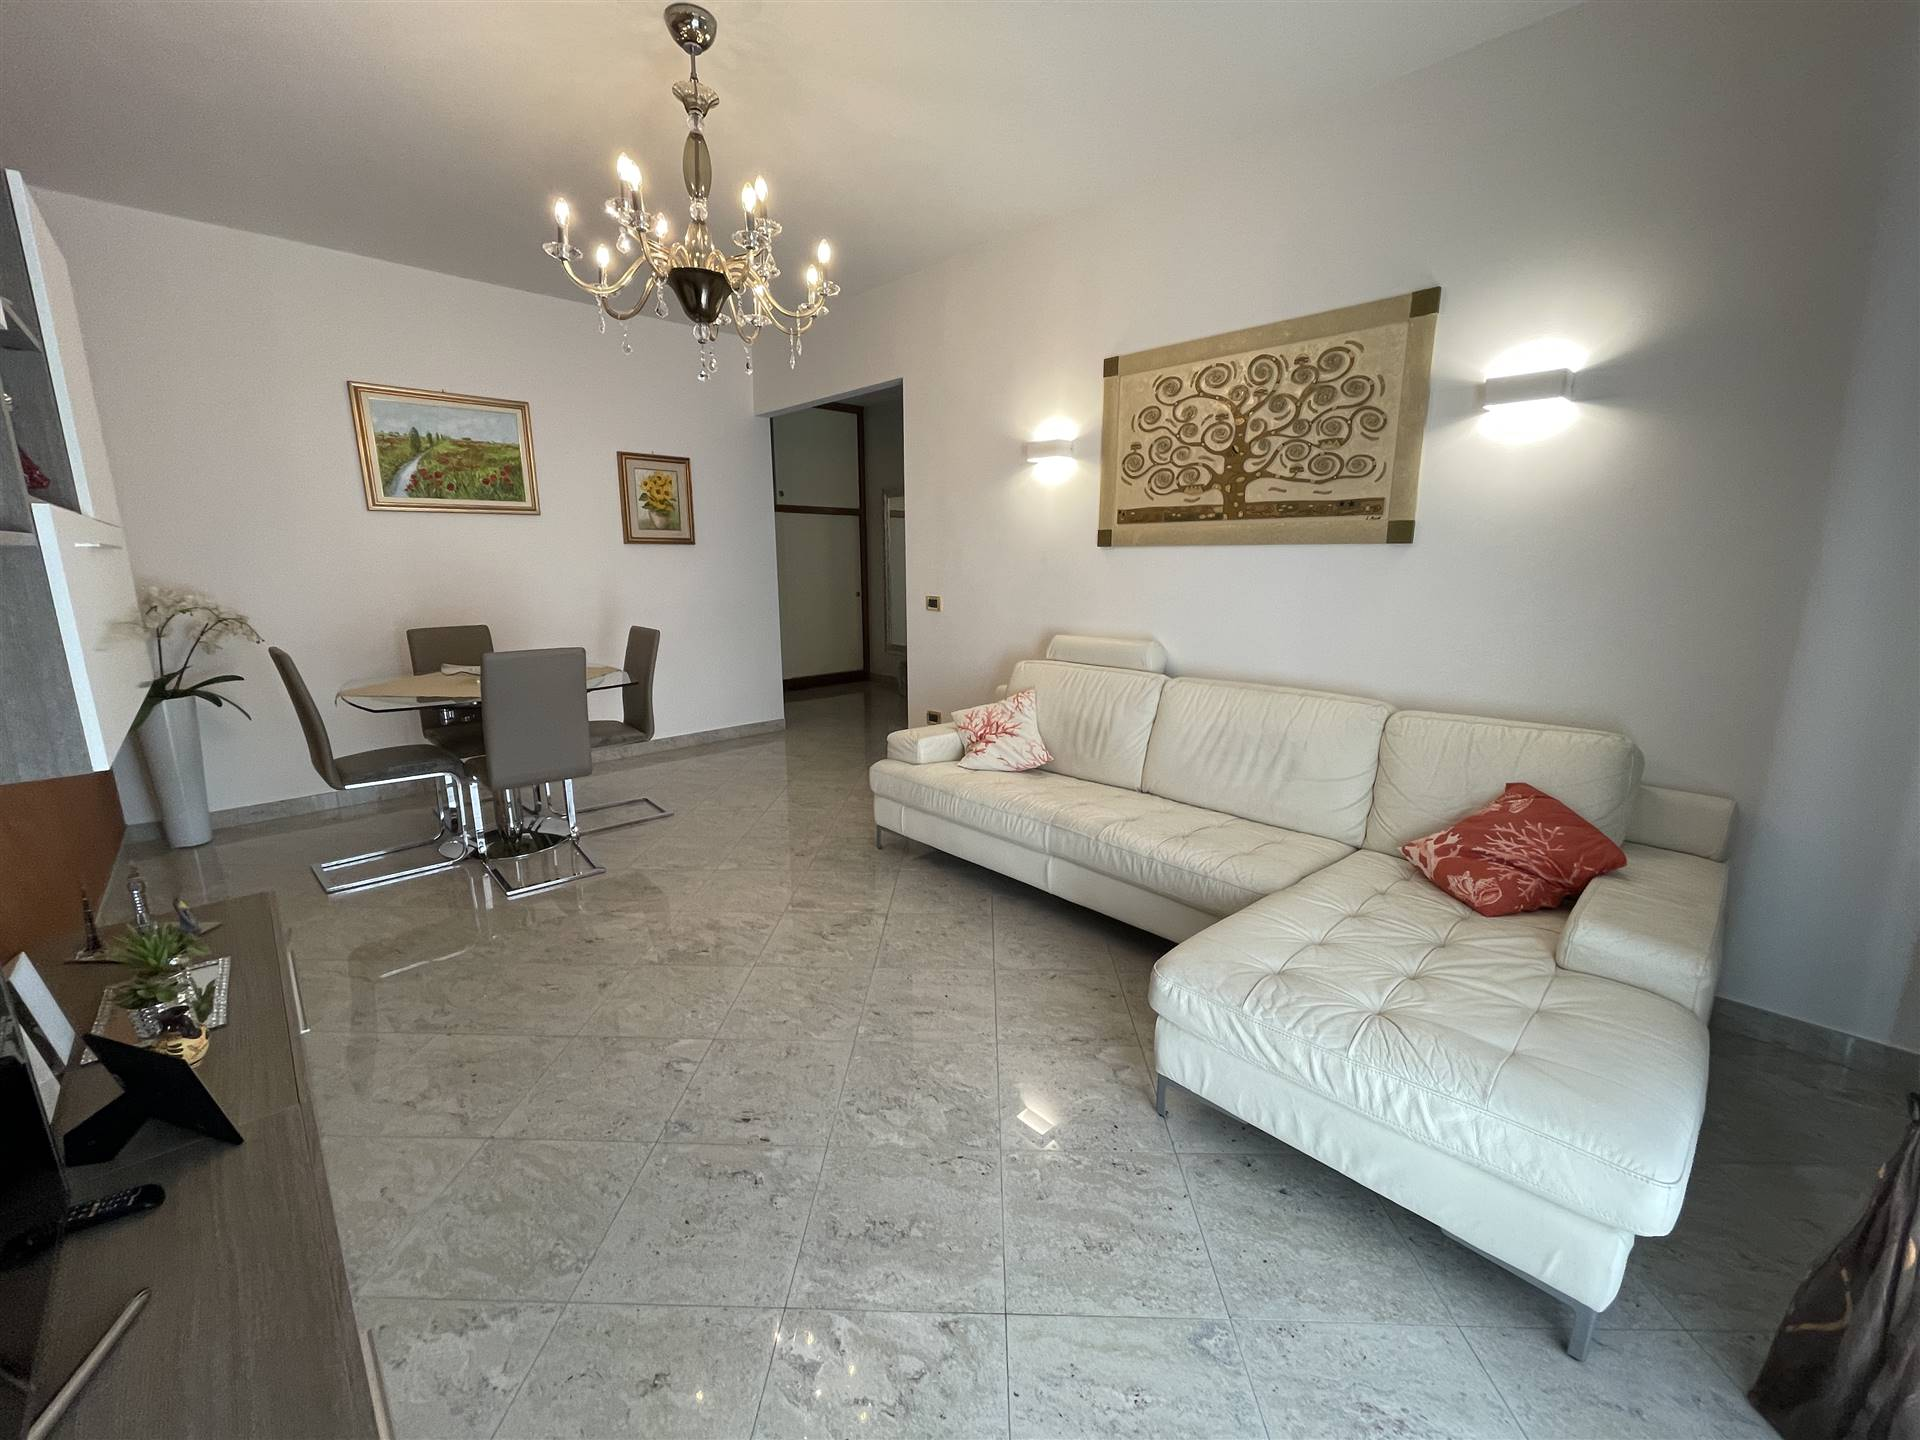 SALONI, CHIOGGIA, Apartment for sale, Excellent Condition, Heating Individual heating system, Energetic class: G, placed at 2° on 5, composed by: 5